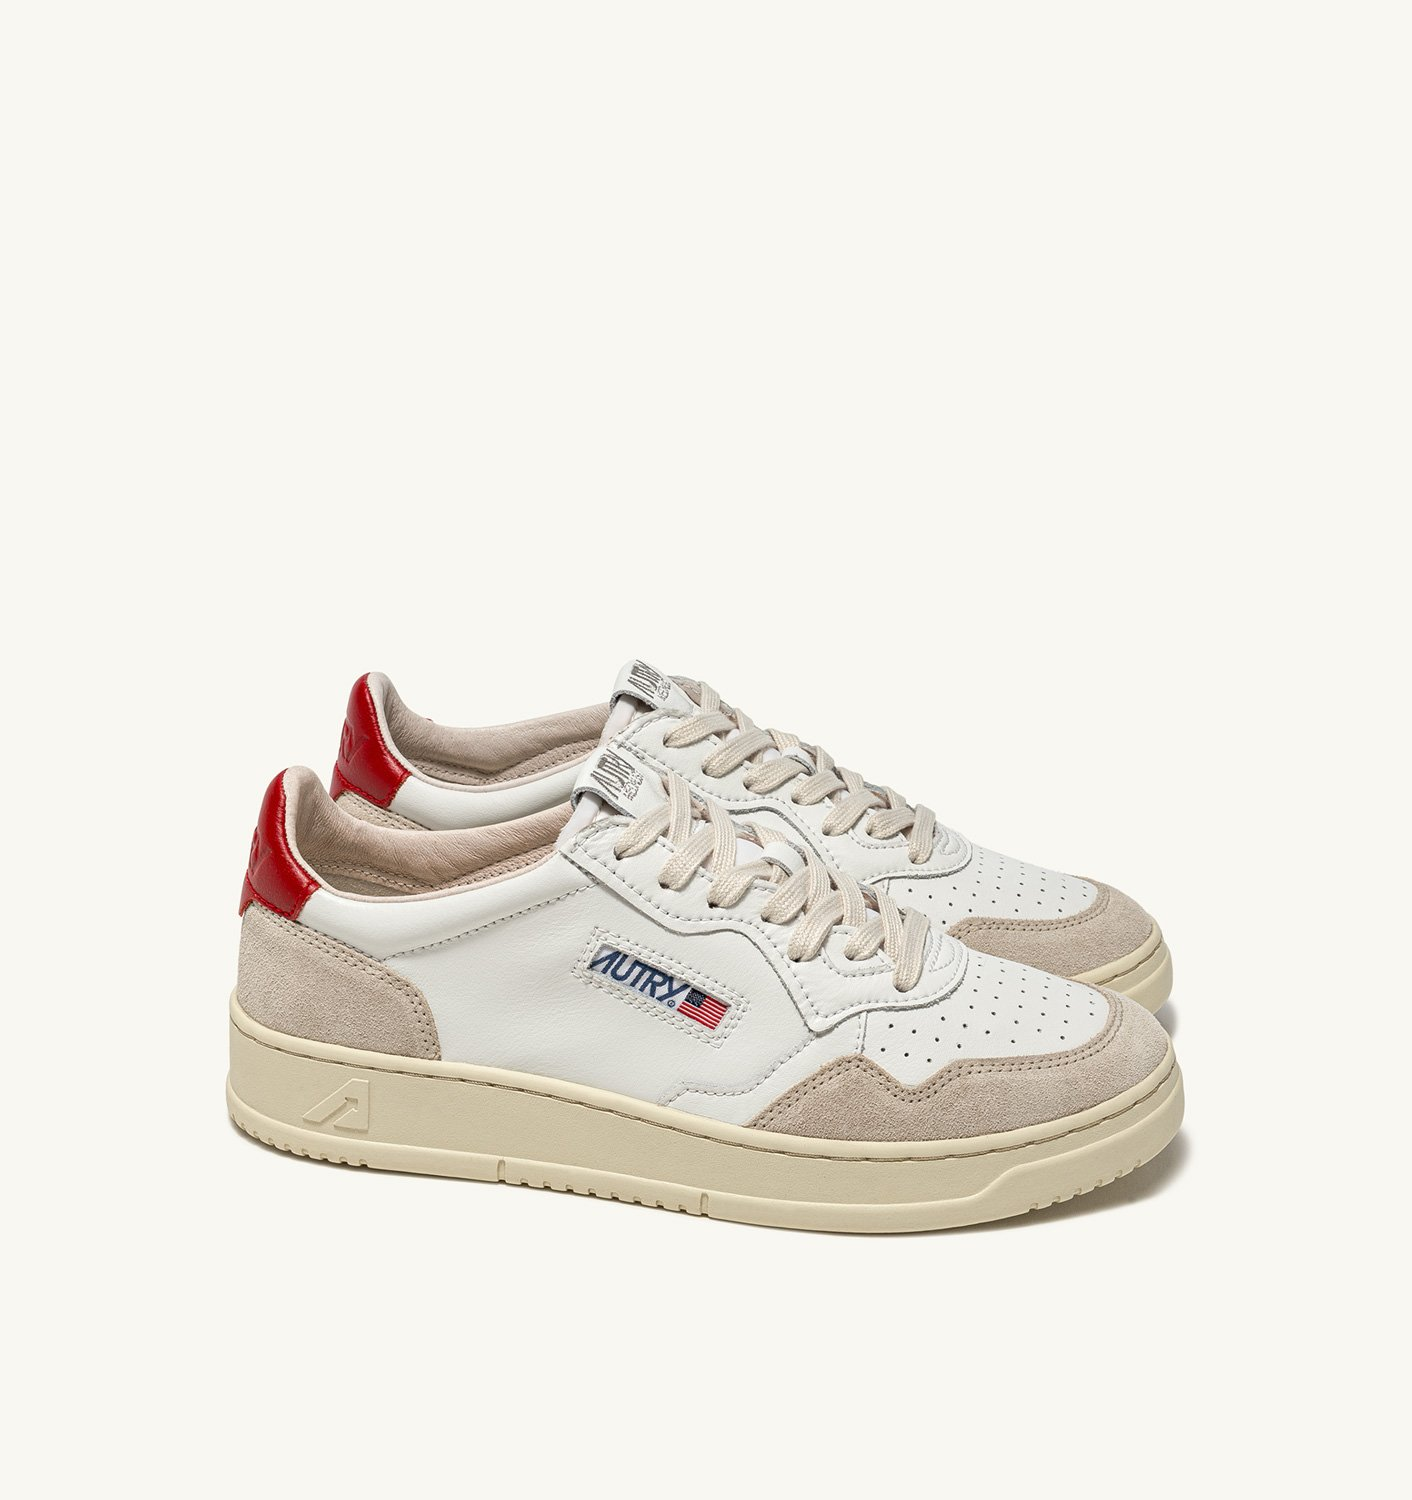 AUTRY: MEDALIST LOW SNEAKERS IN LEATHER AND SUEDE COLOR WHITE RED